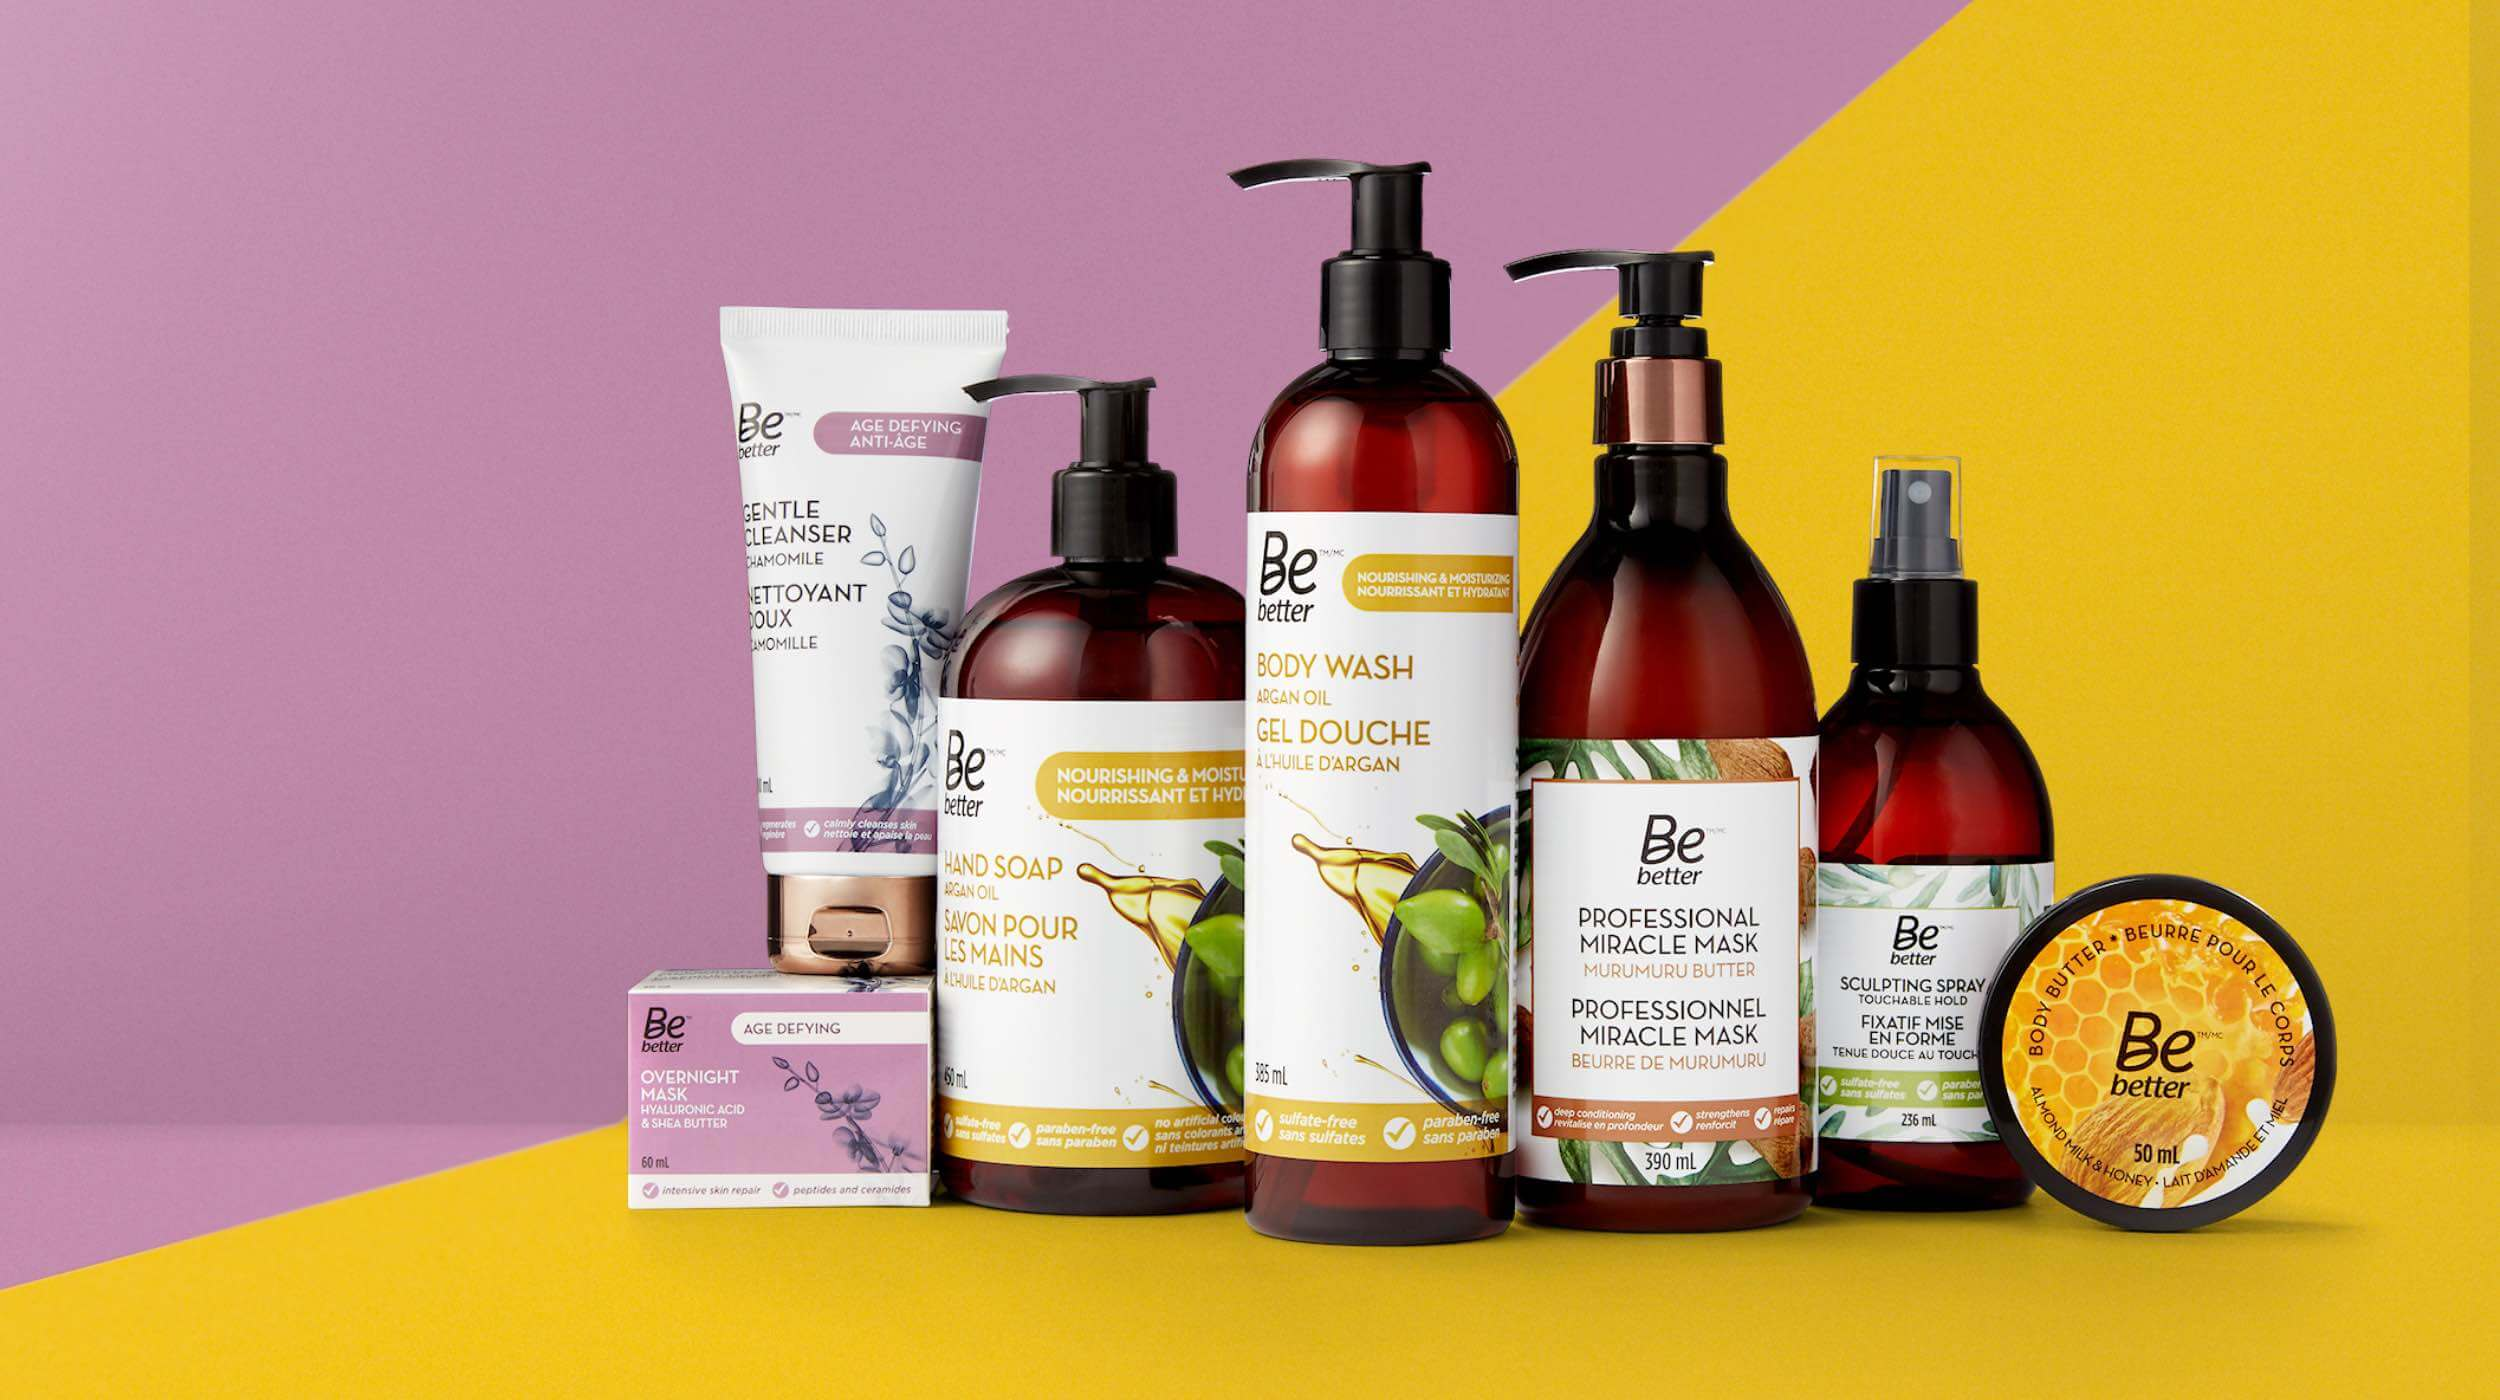 Refreshed brand identity for their  Be Better product line